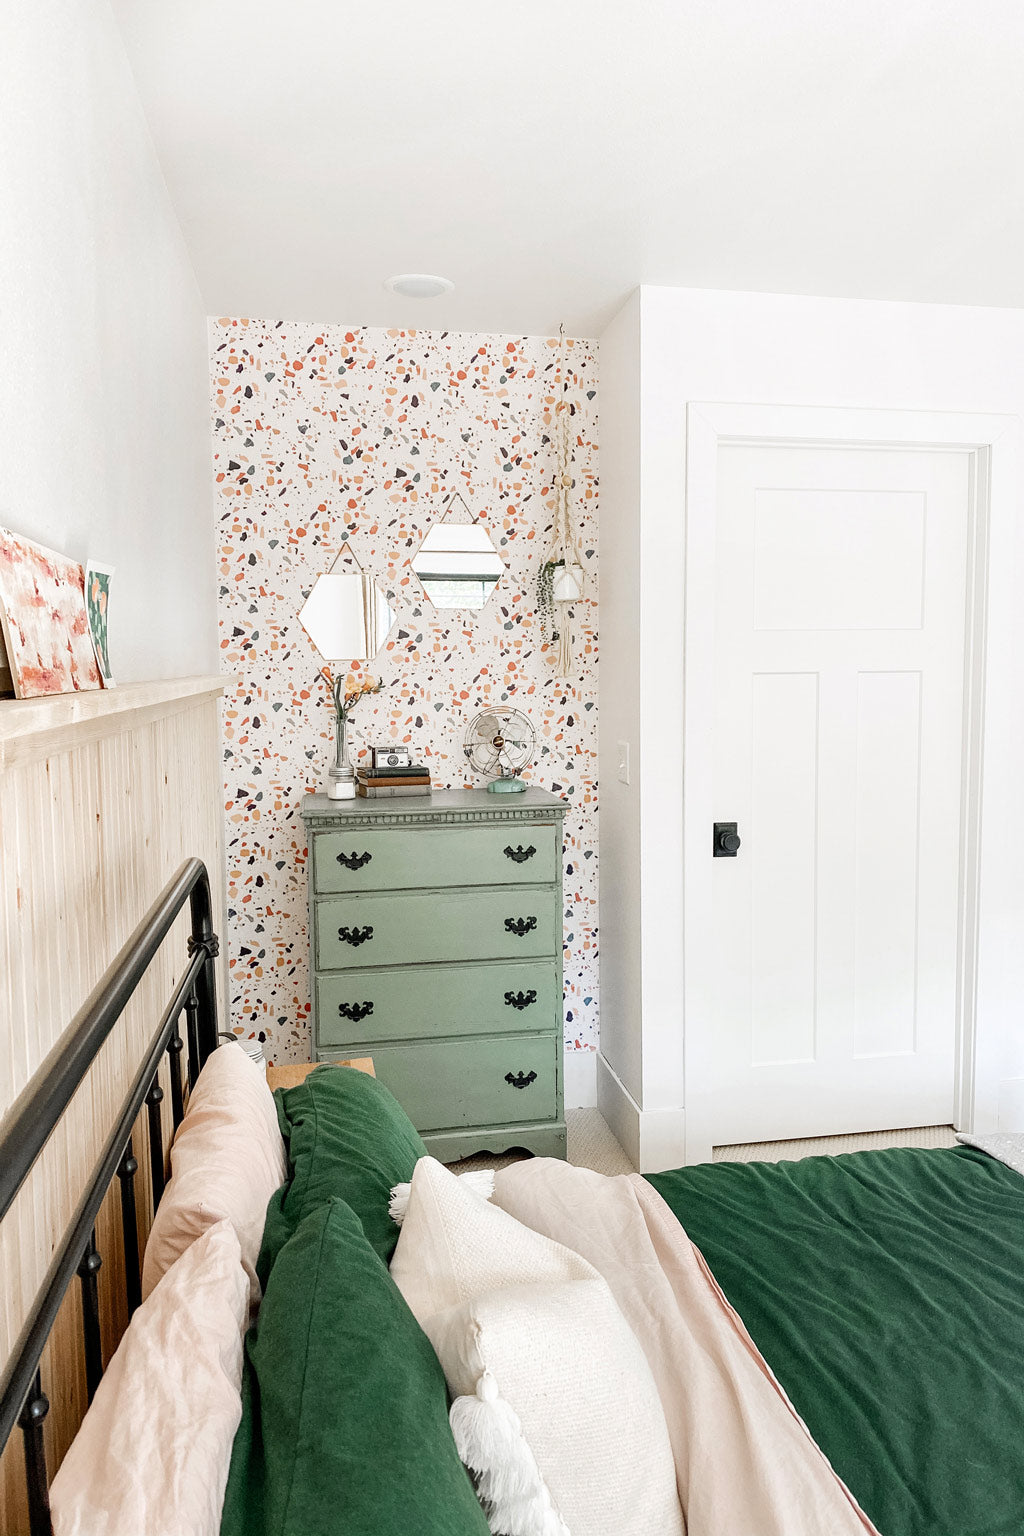 Wallpaper designs for girls room interior projectc